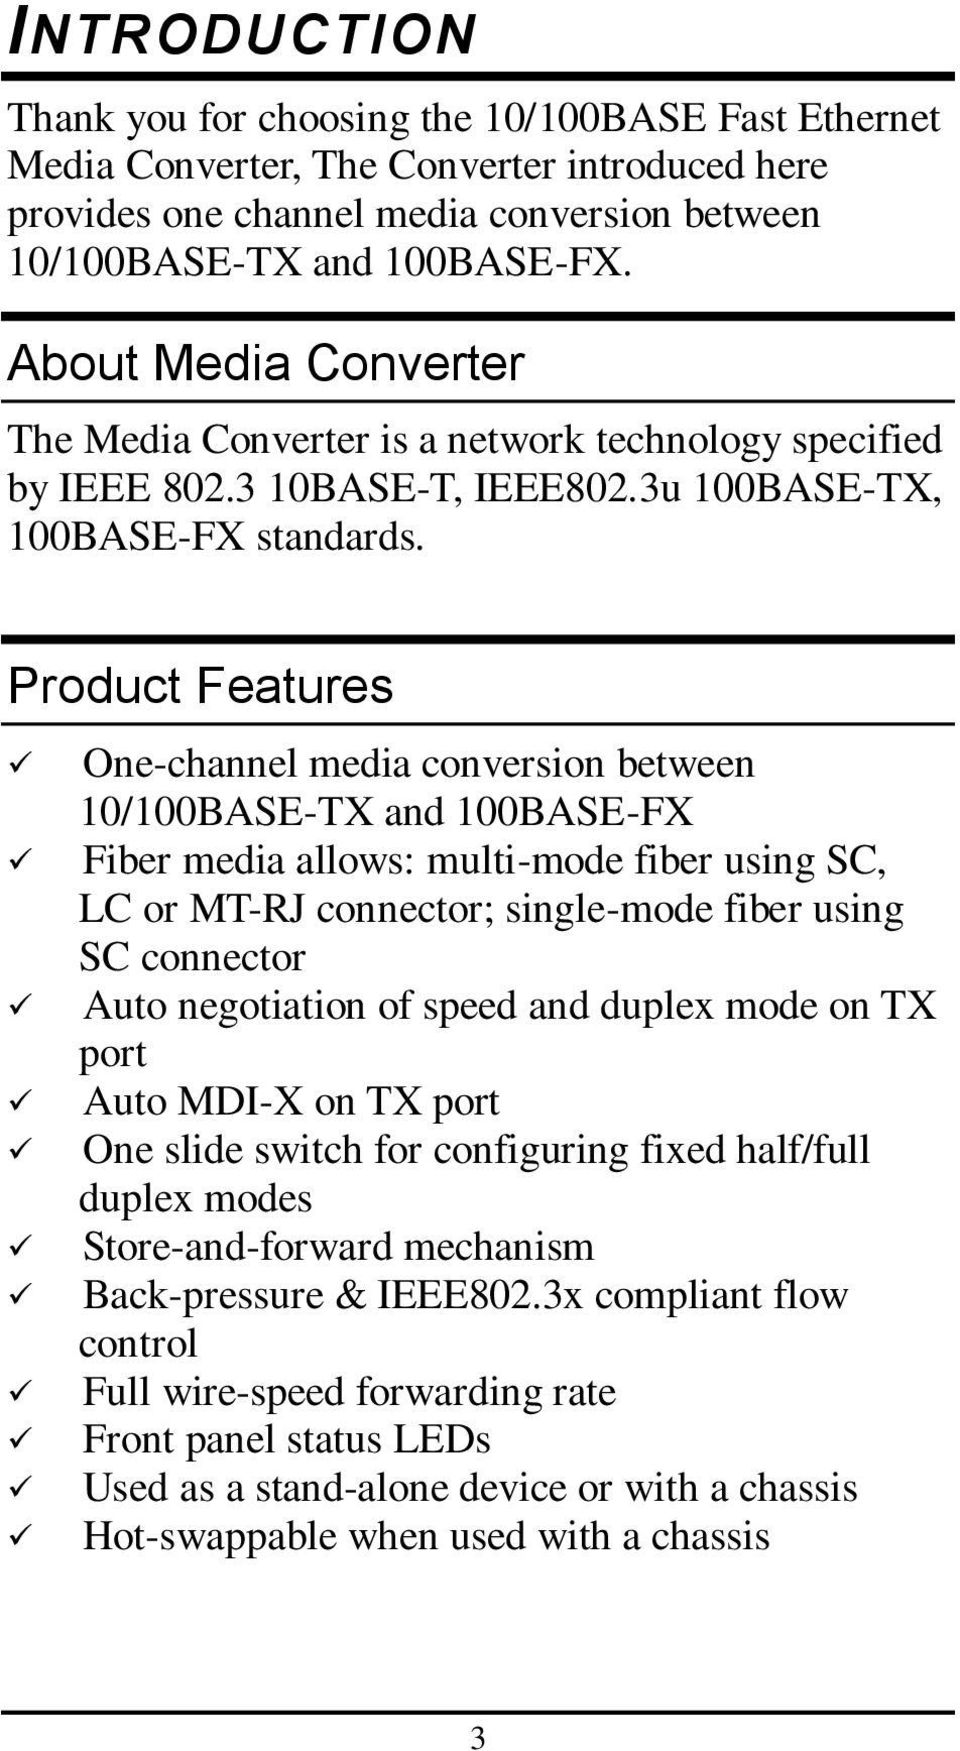 Product Features One-channel media conversion between 10/100BASE-TX and 100BASE-FX Fiber media allows: multi-mode fiber using SC, LC or MT-RJ connector; single-mode fiber using SC connector Auto